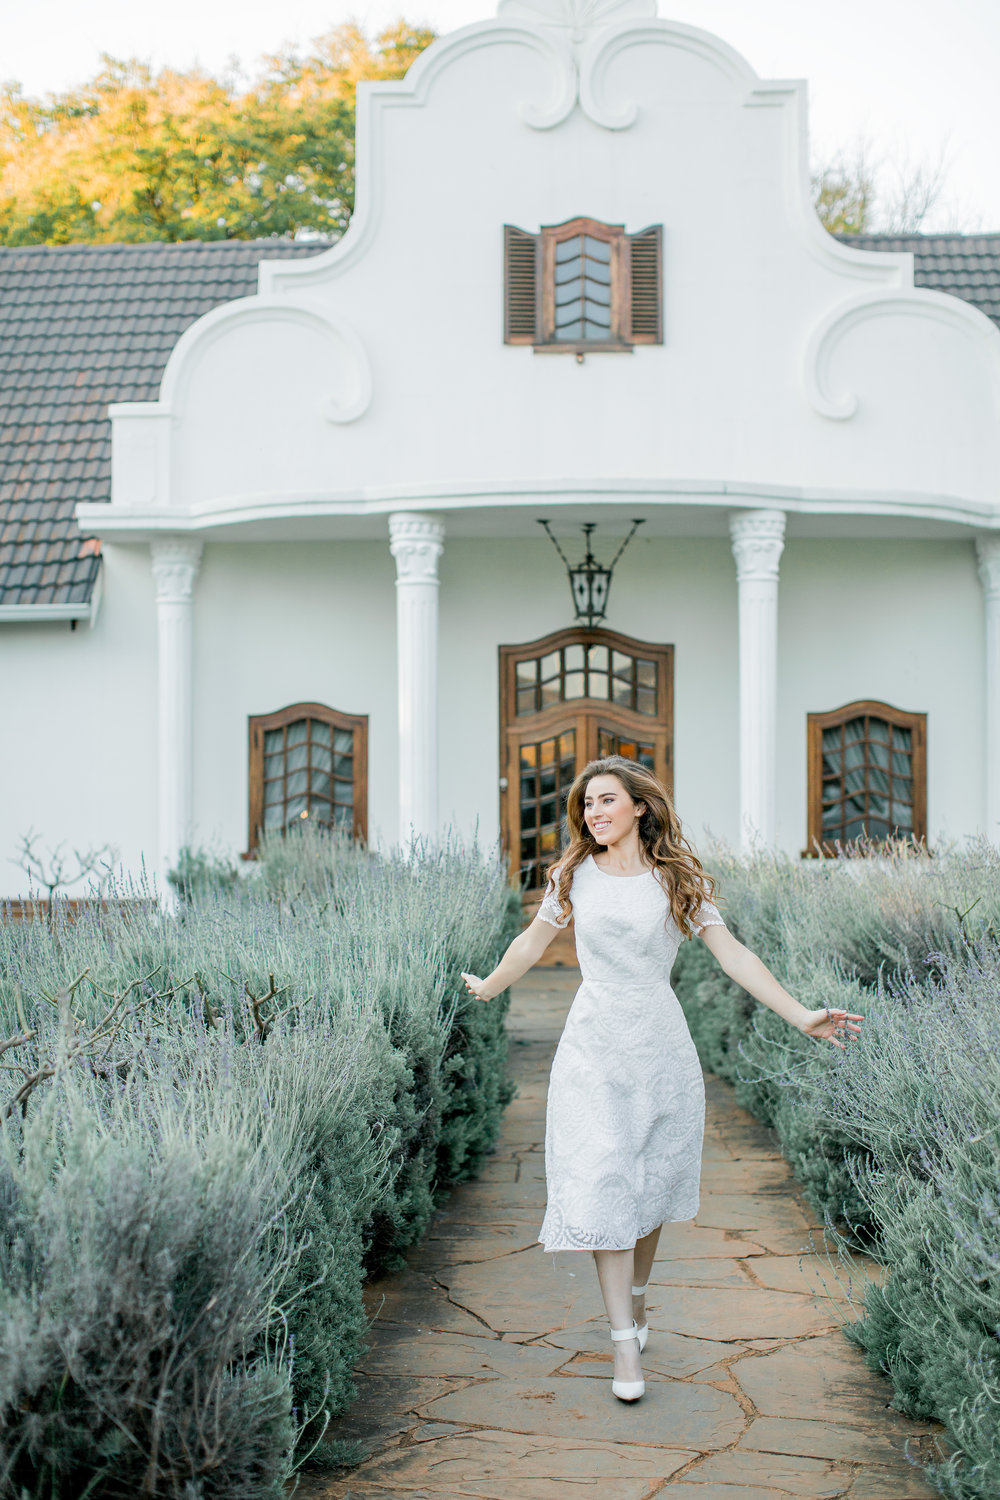 gauteng wedding photographer clareece smit13.jpg